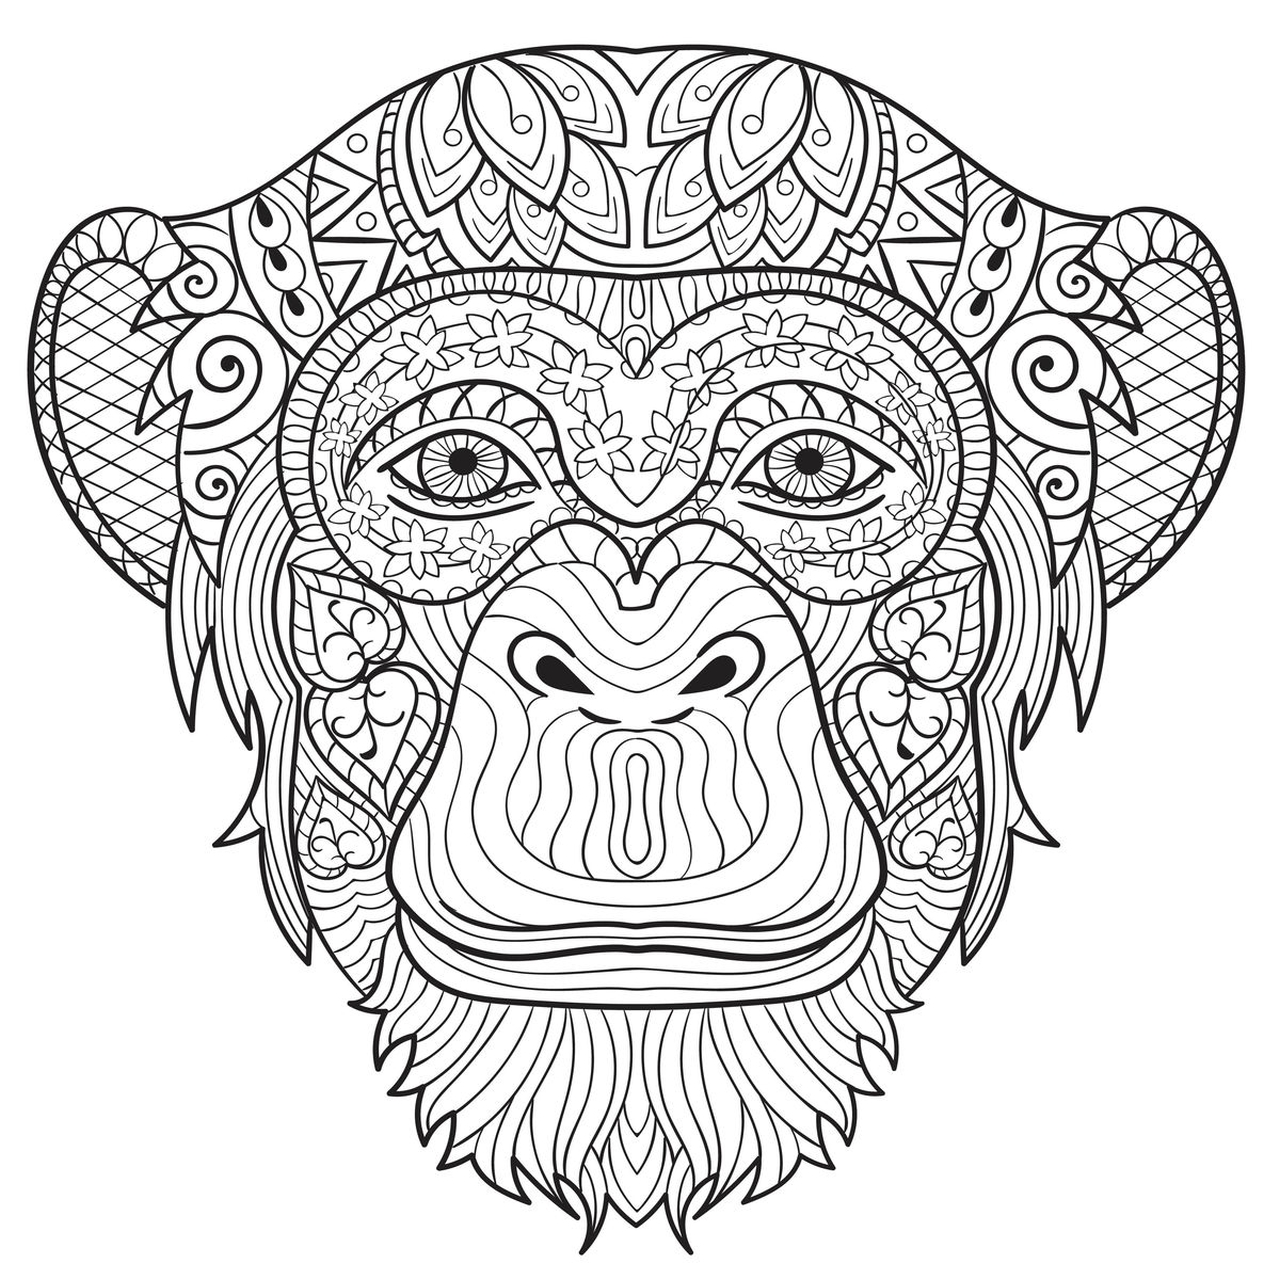 Get This Monkey Coloring Pages For Adults